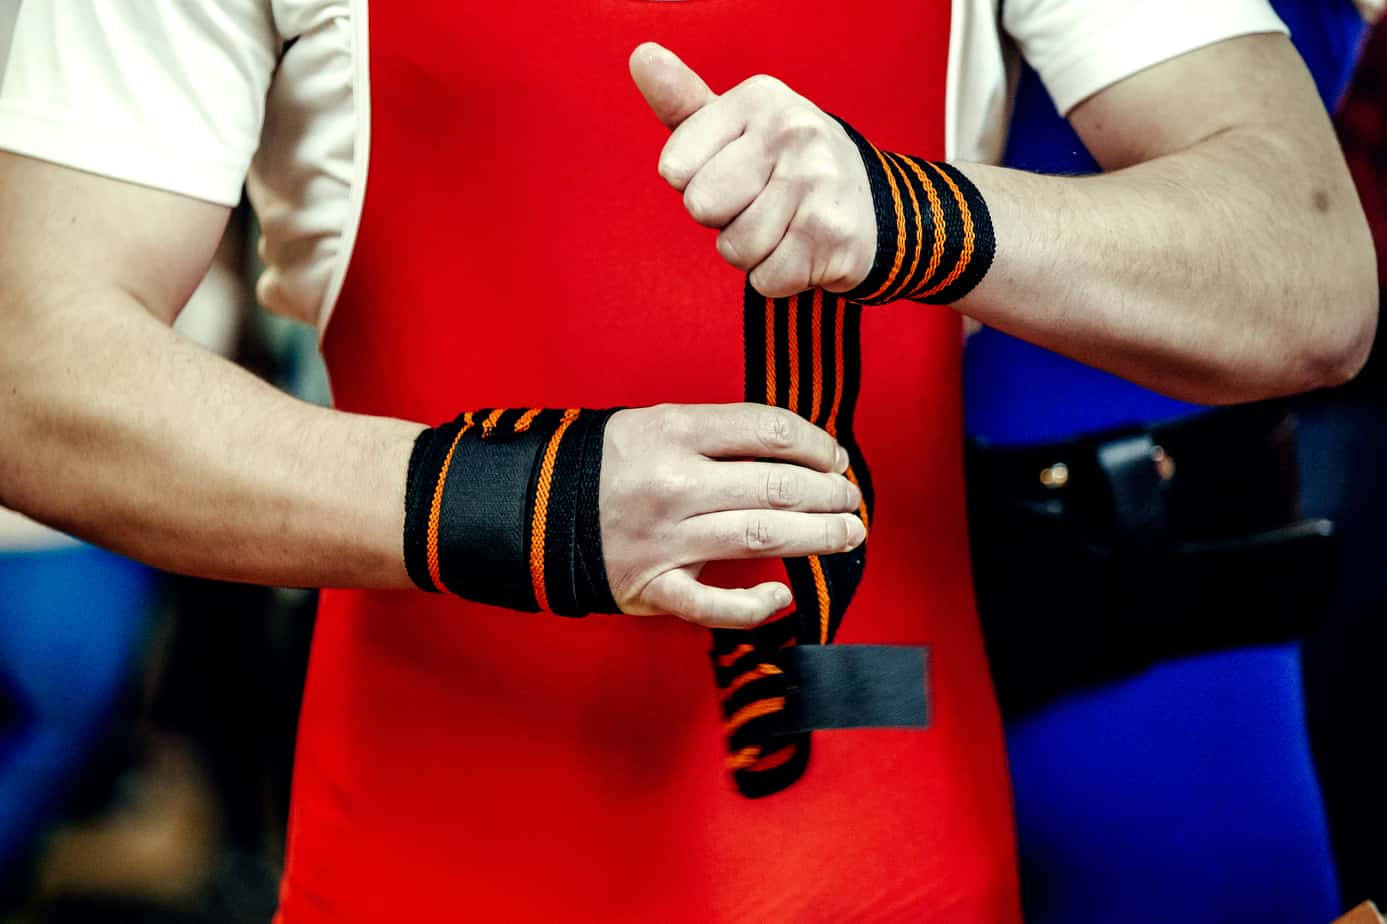 athlete powerlifter hands in wristbands